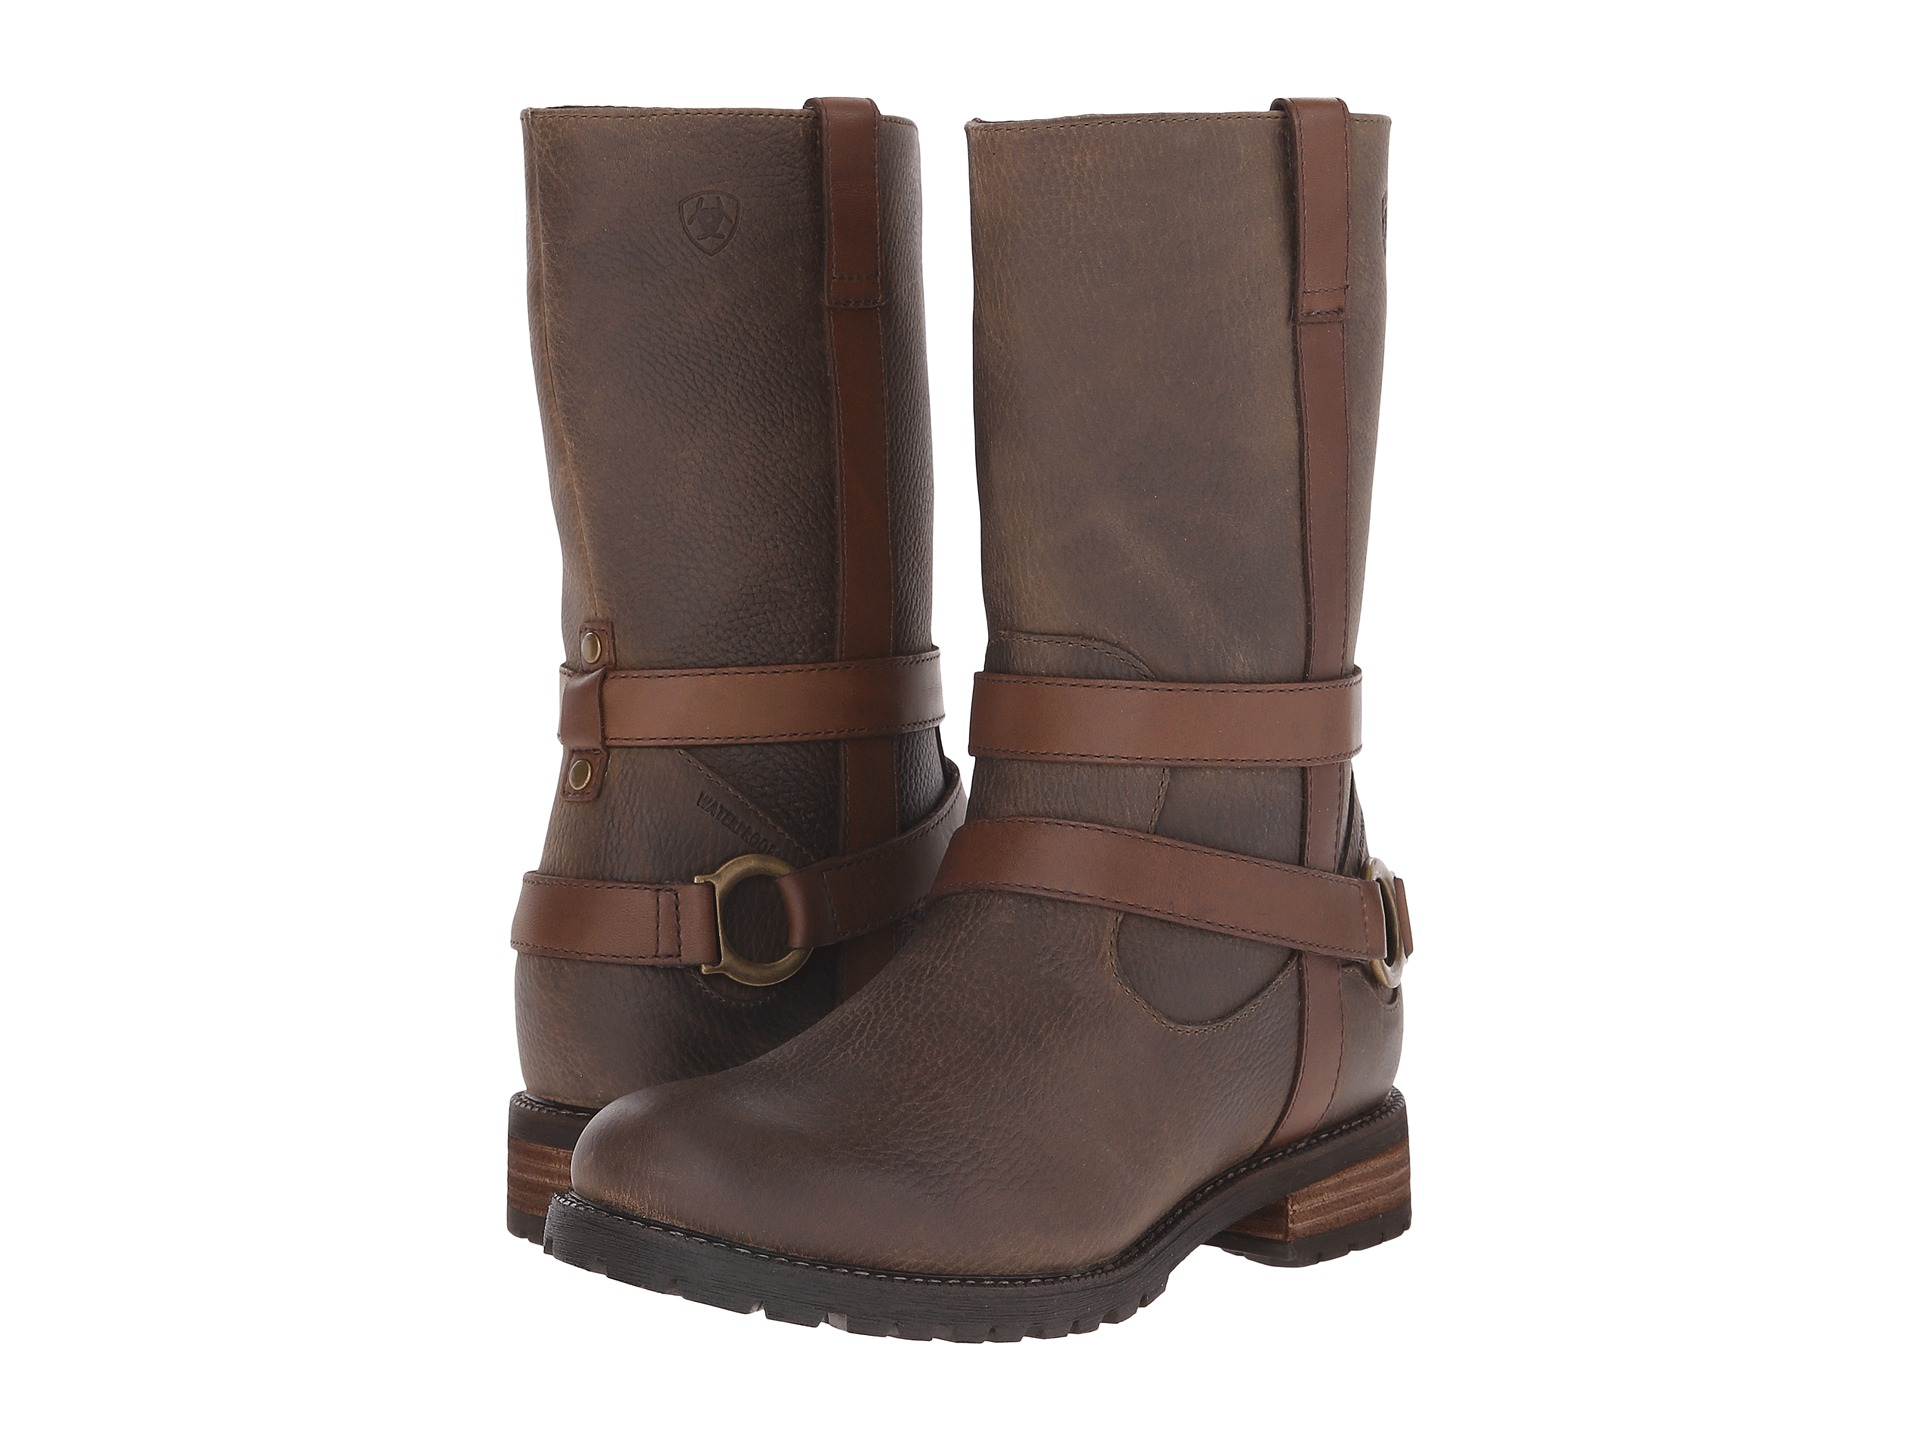 Ariat Boots Women at 6pm.com